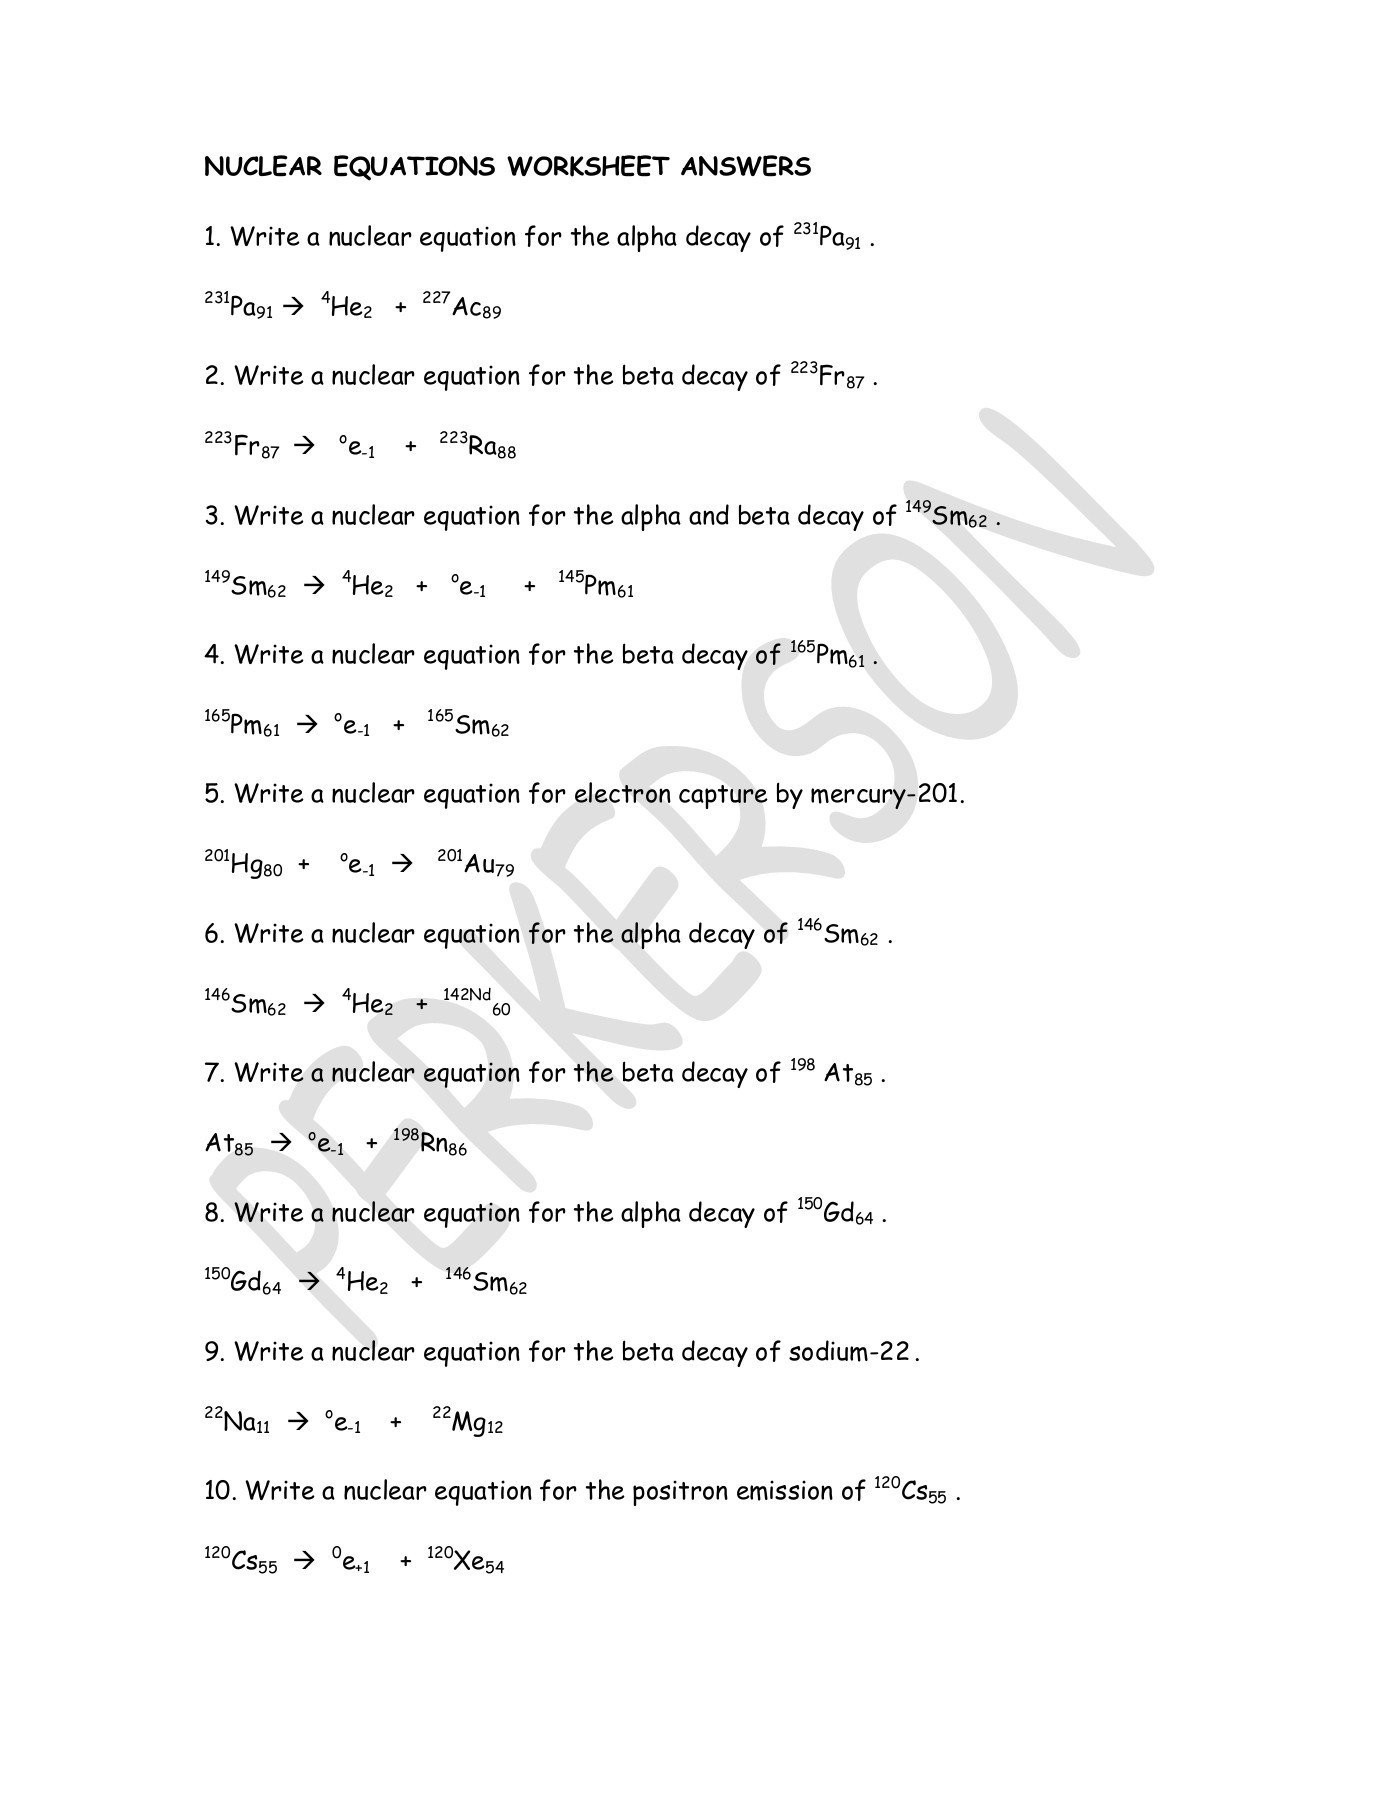 nuclear equations worksheet answers nuclear equations worksheet answers typepad pages 1 3 of nuclear equations worksheet answers